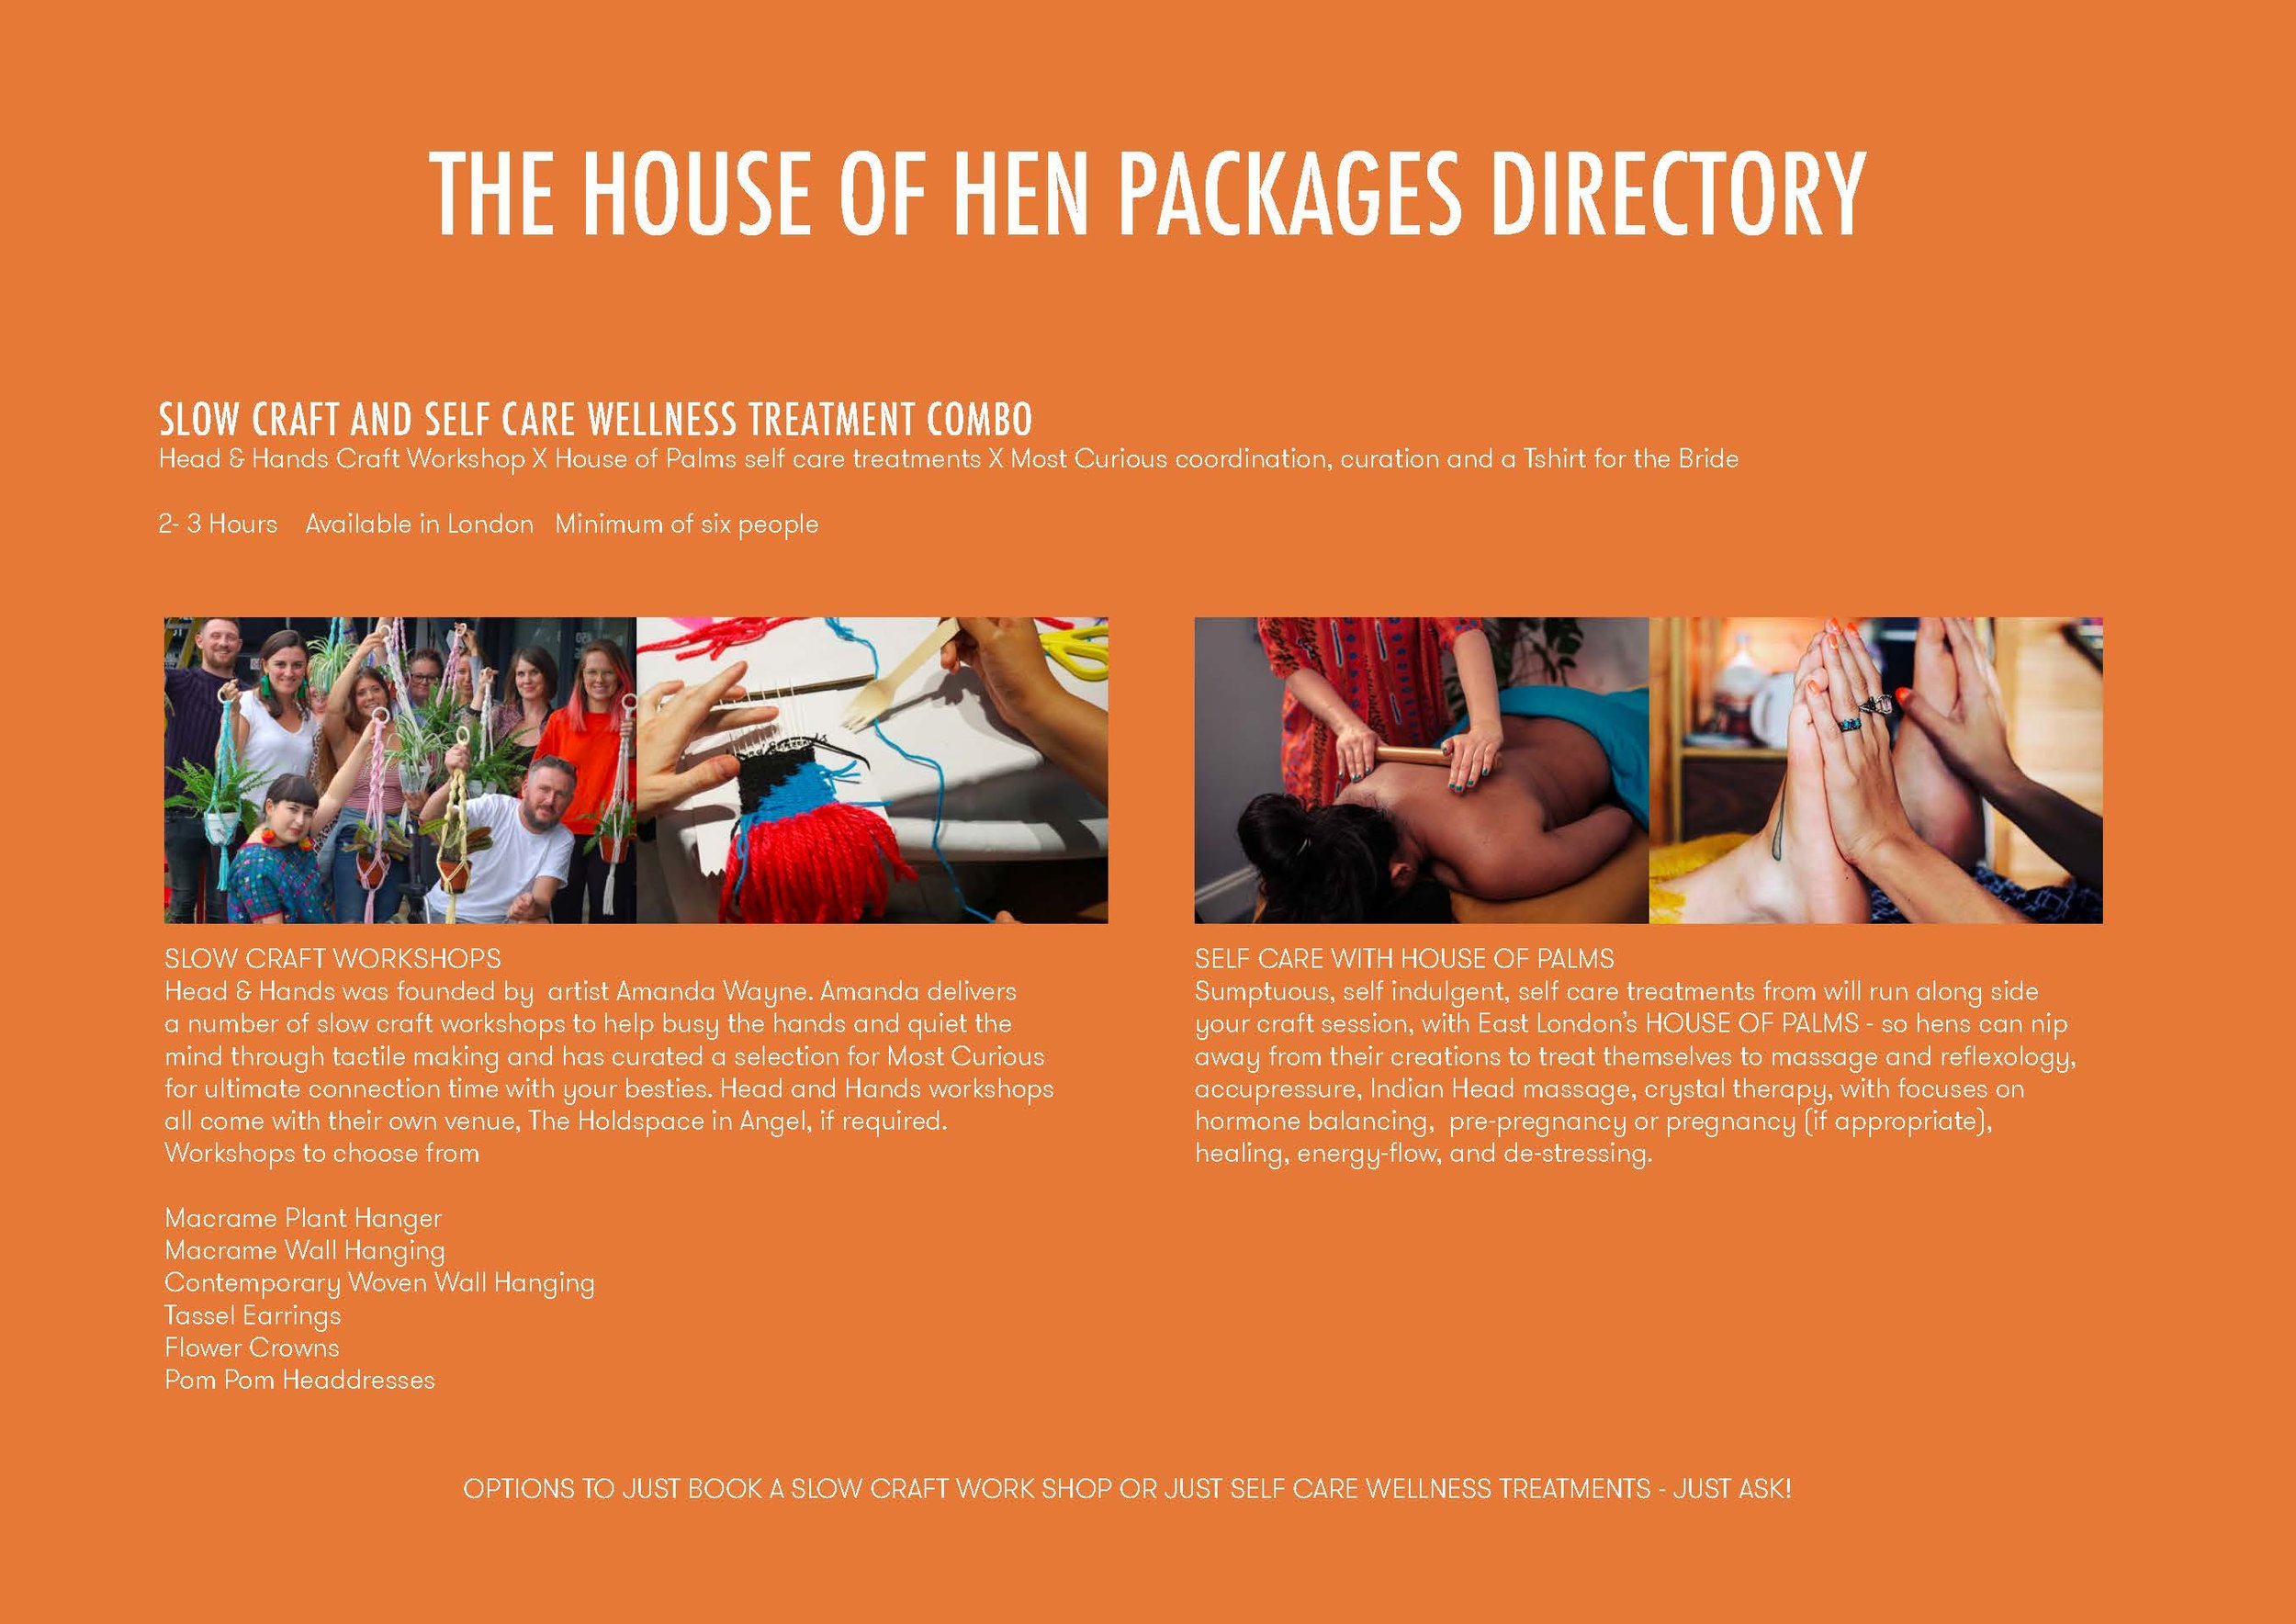 House of Hen_Packages Directory_Page_07.jpg